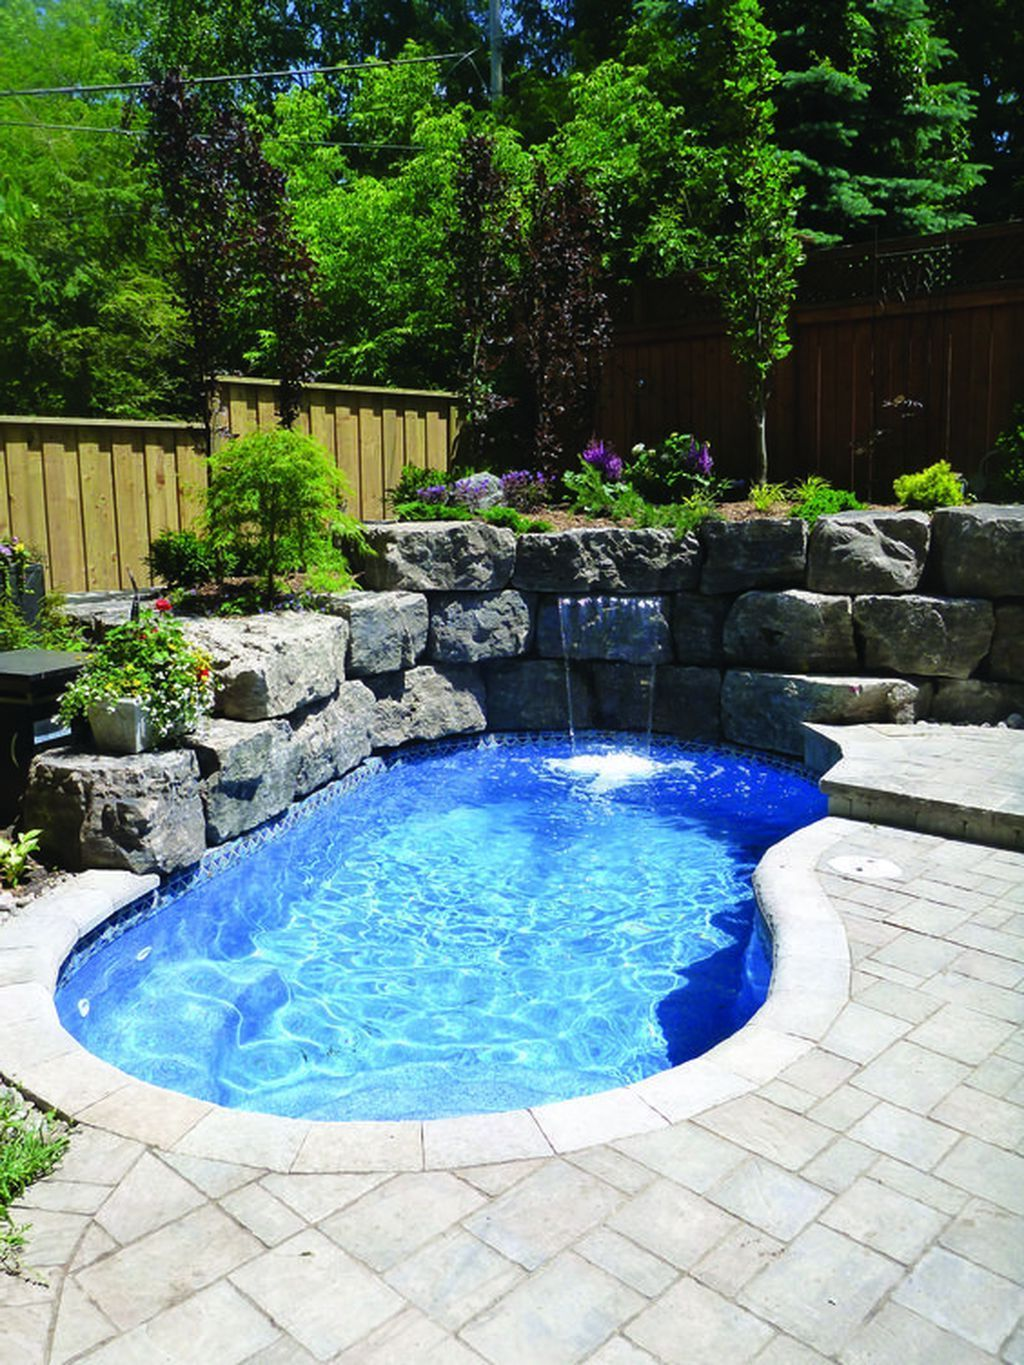 Amazing Pool Ideas Perfect For Small Backyards Decor Around The World Small Inground Pool Small Pool Design Small Swimming Pools